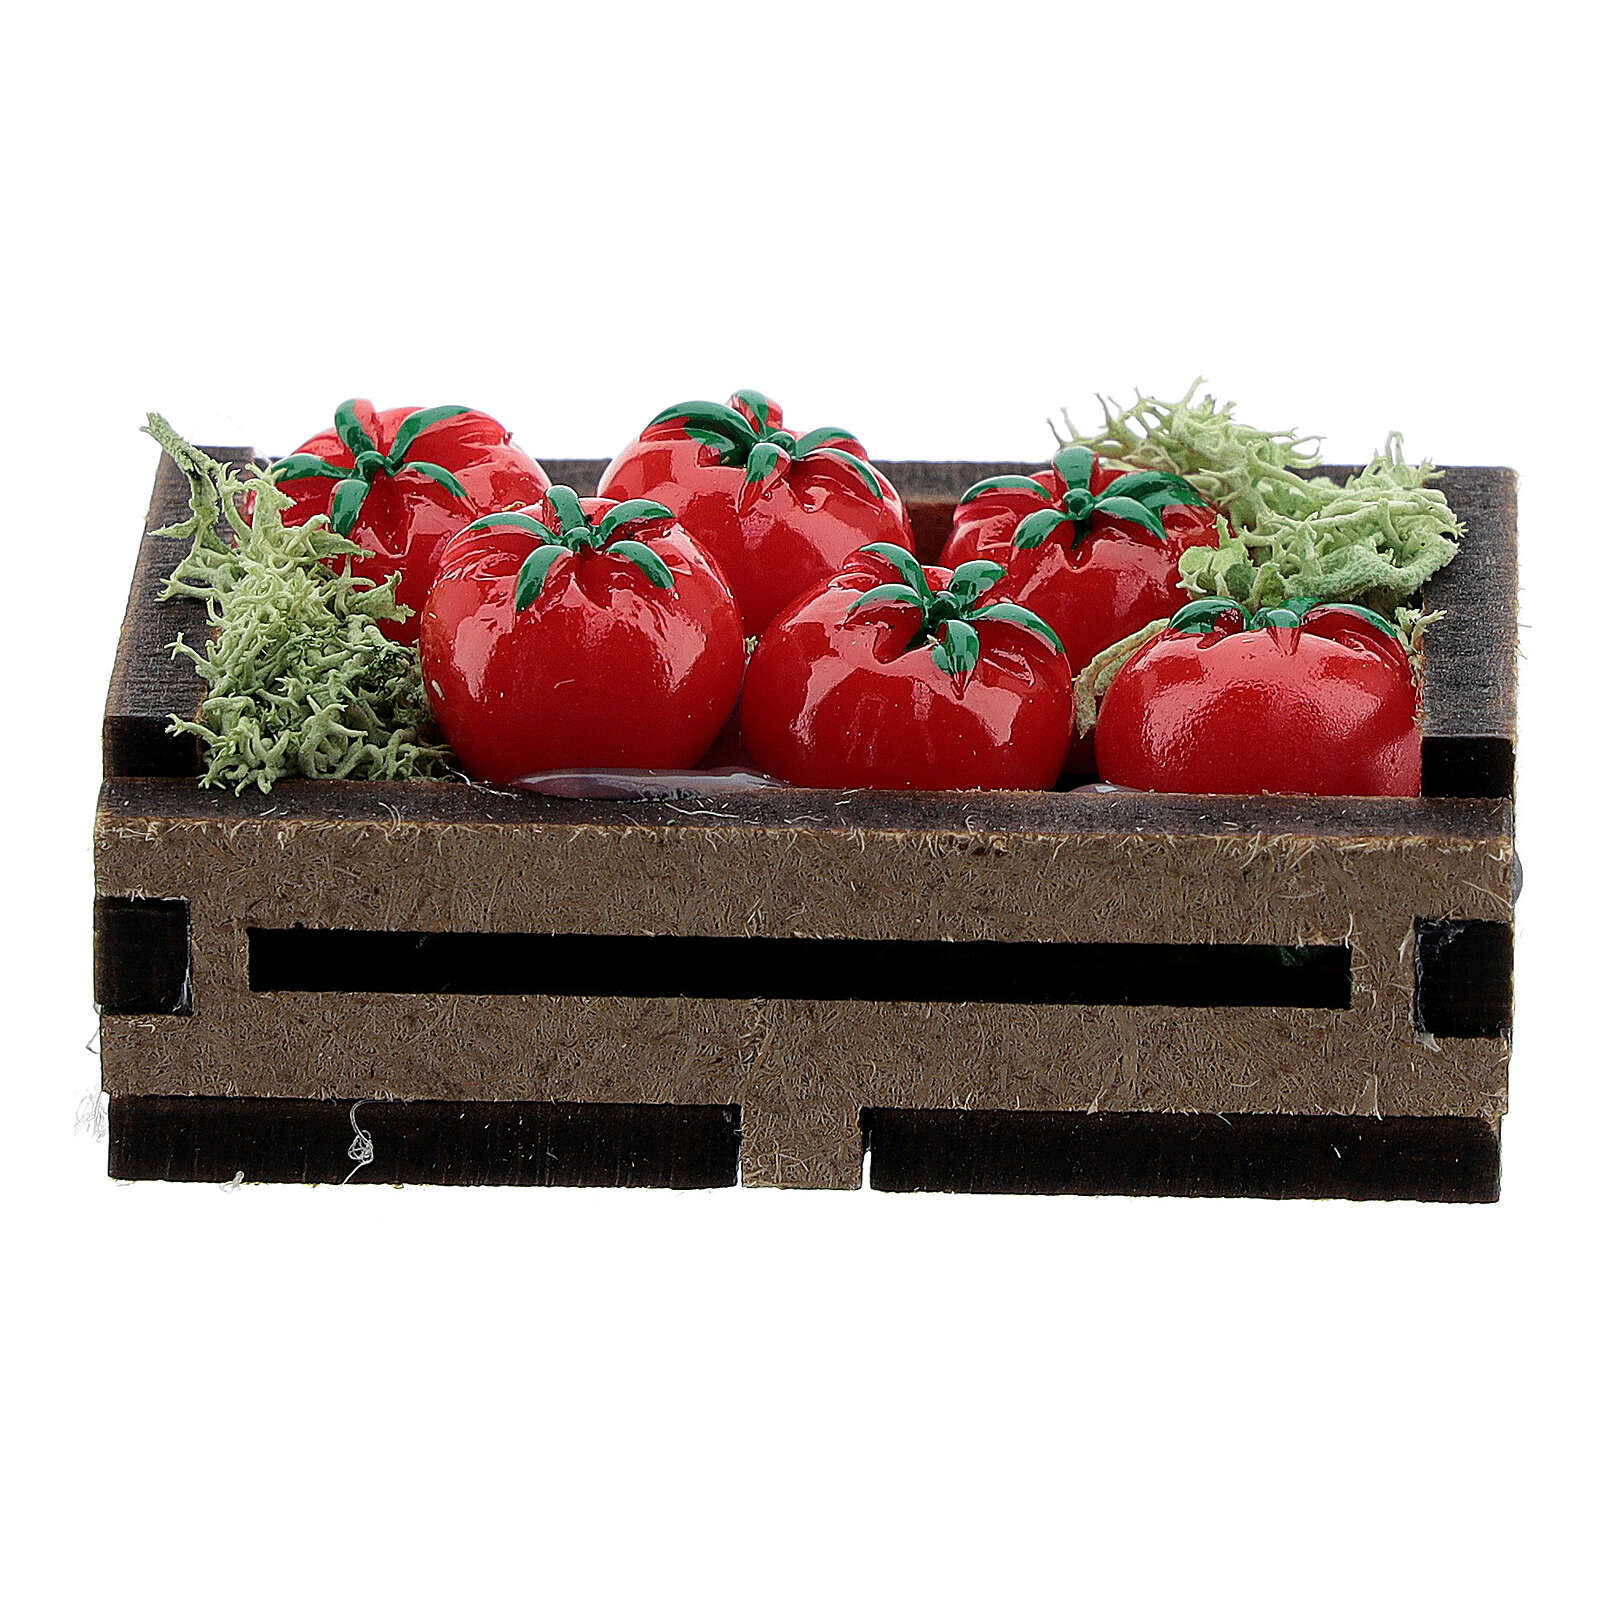 Wood box with tomatos for Nativity Scene with 14-16 cm figurines 4